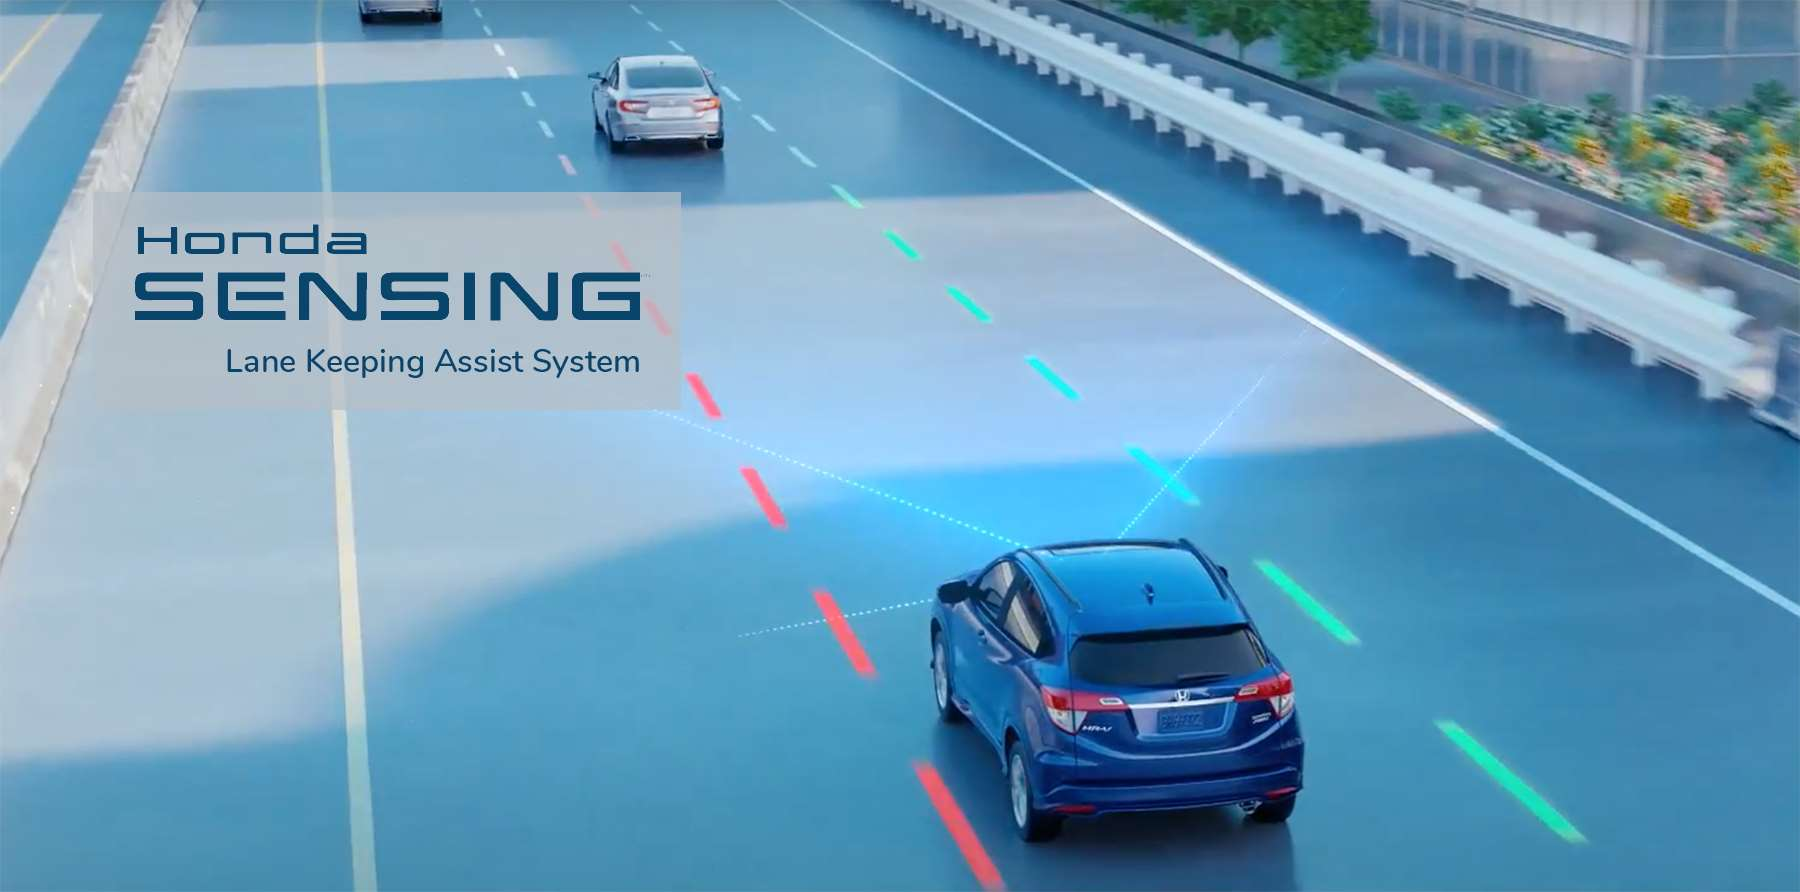 Honda Lane Keeping Assist System LKAS Hero Image